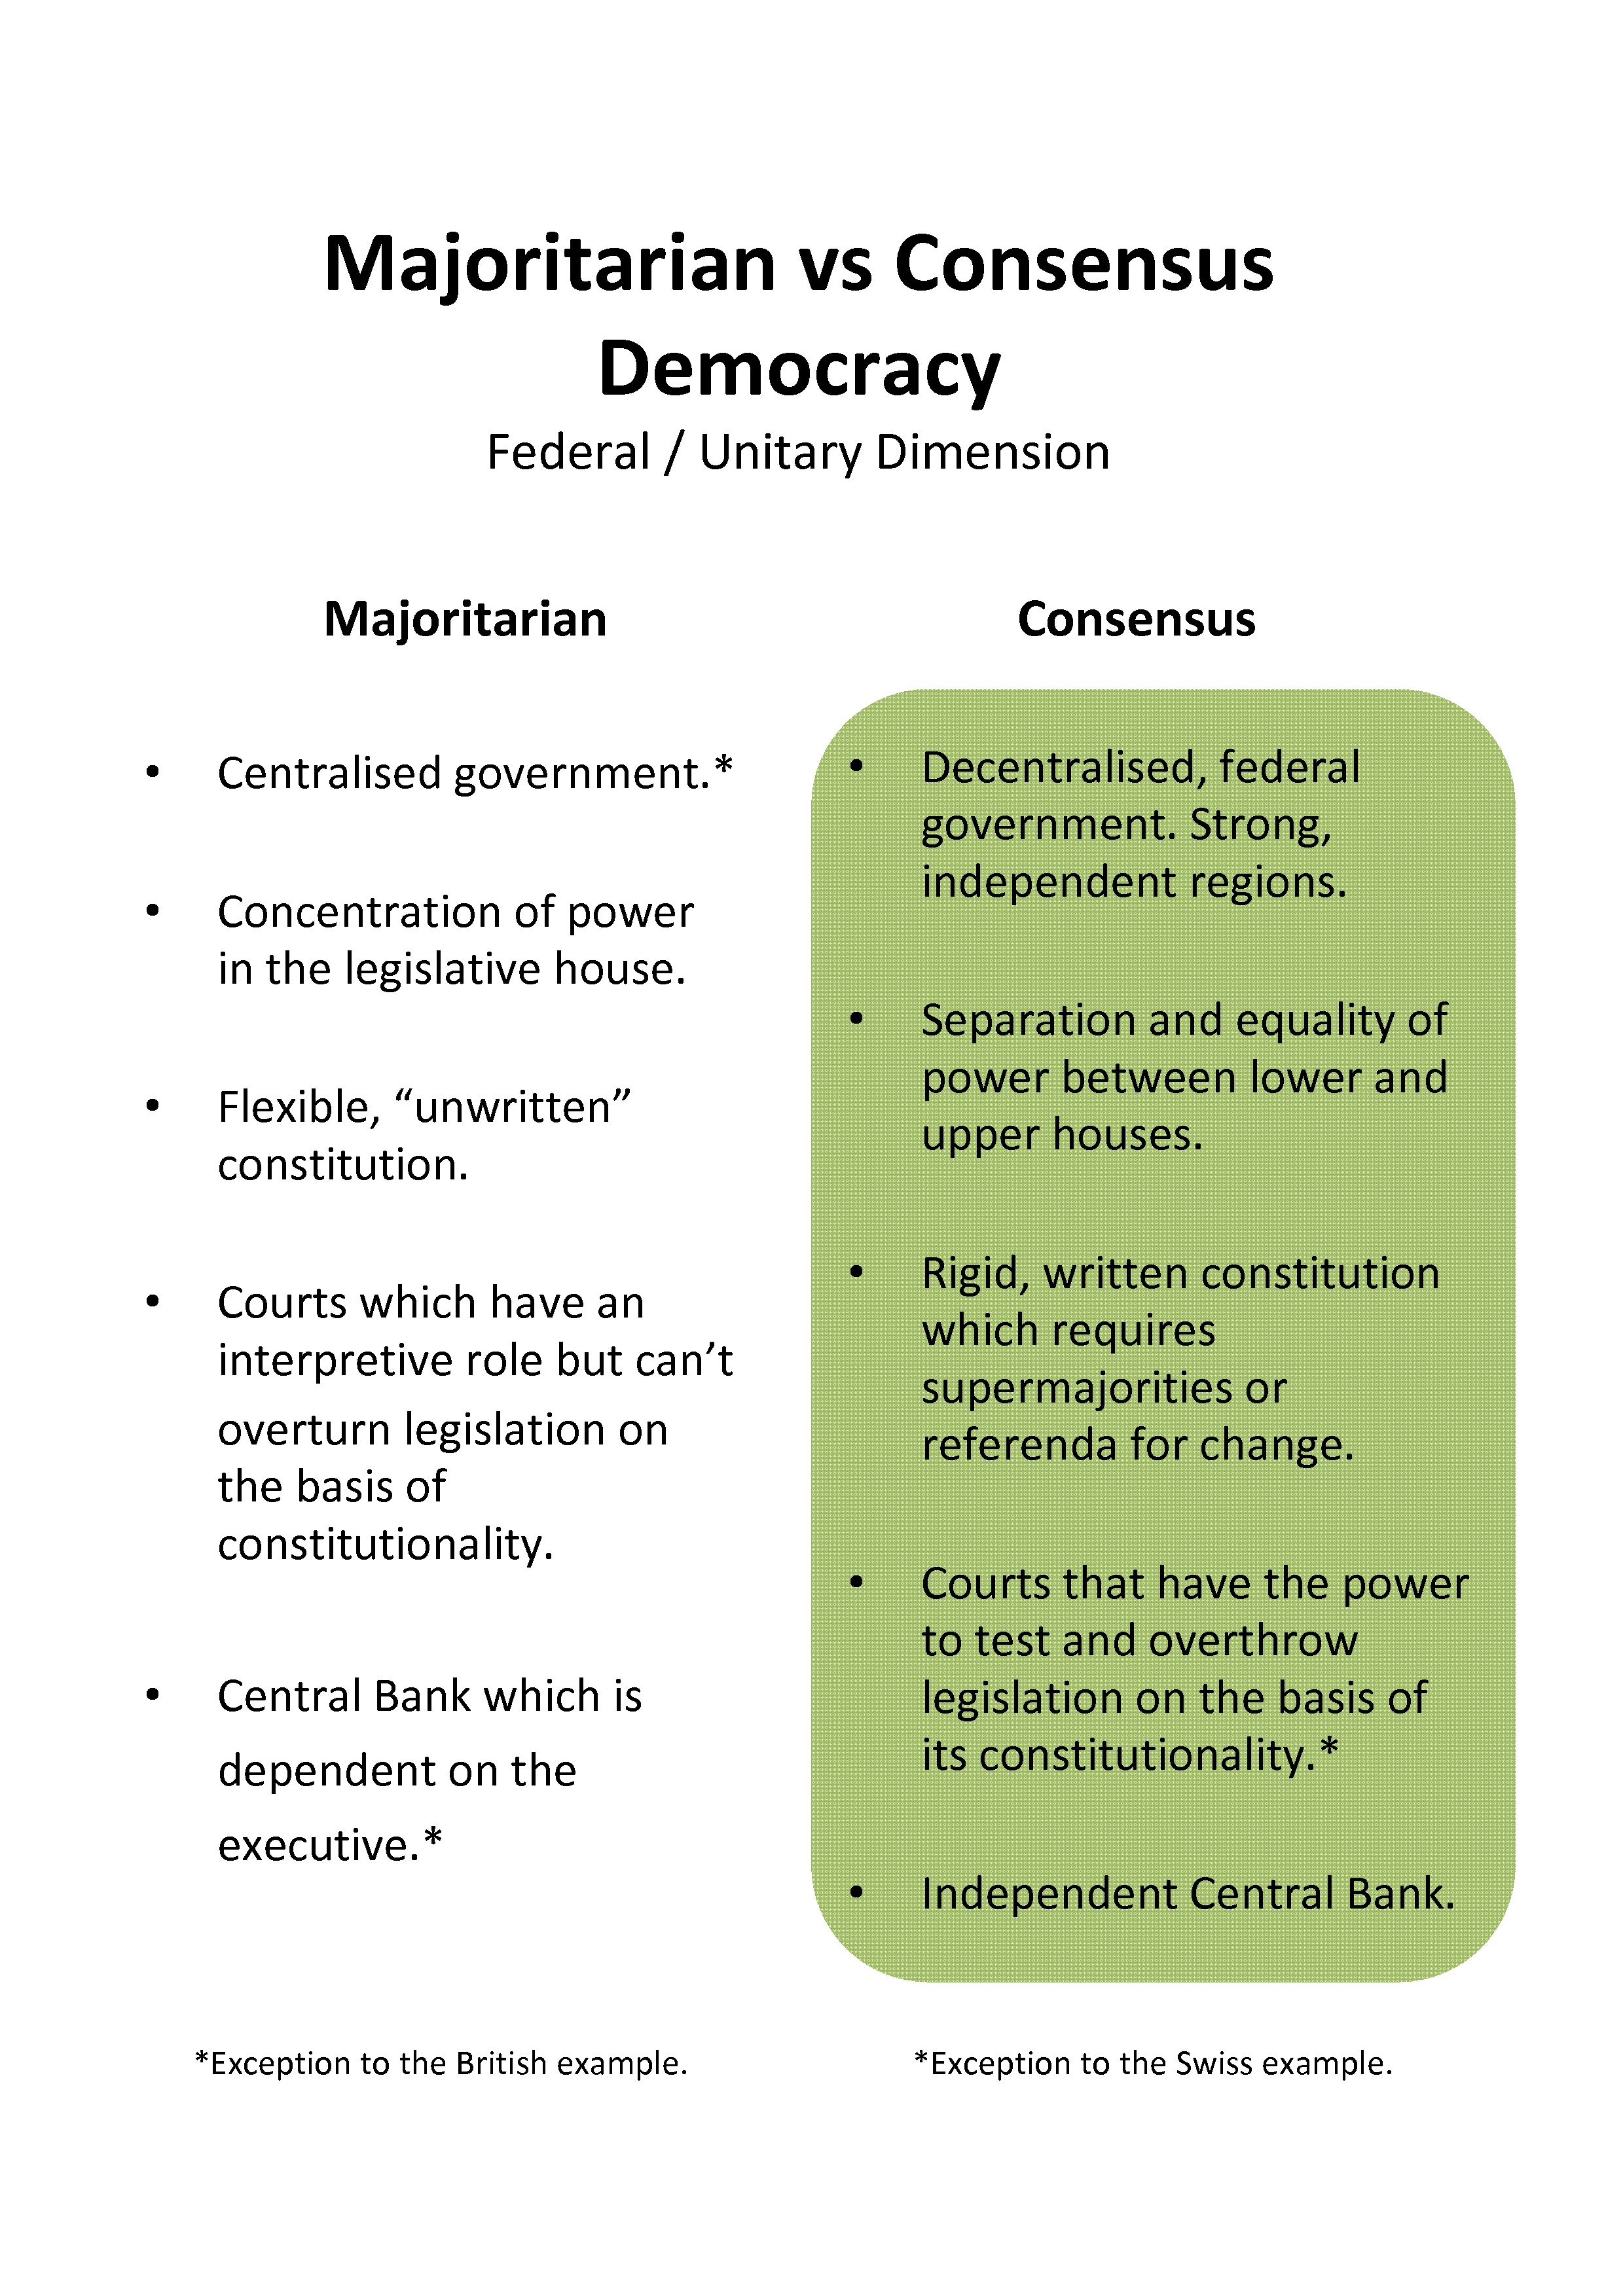 a comparison between england and germany based on lijpharts models of majoritarian and consensus dem